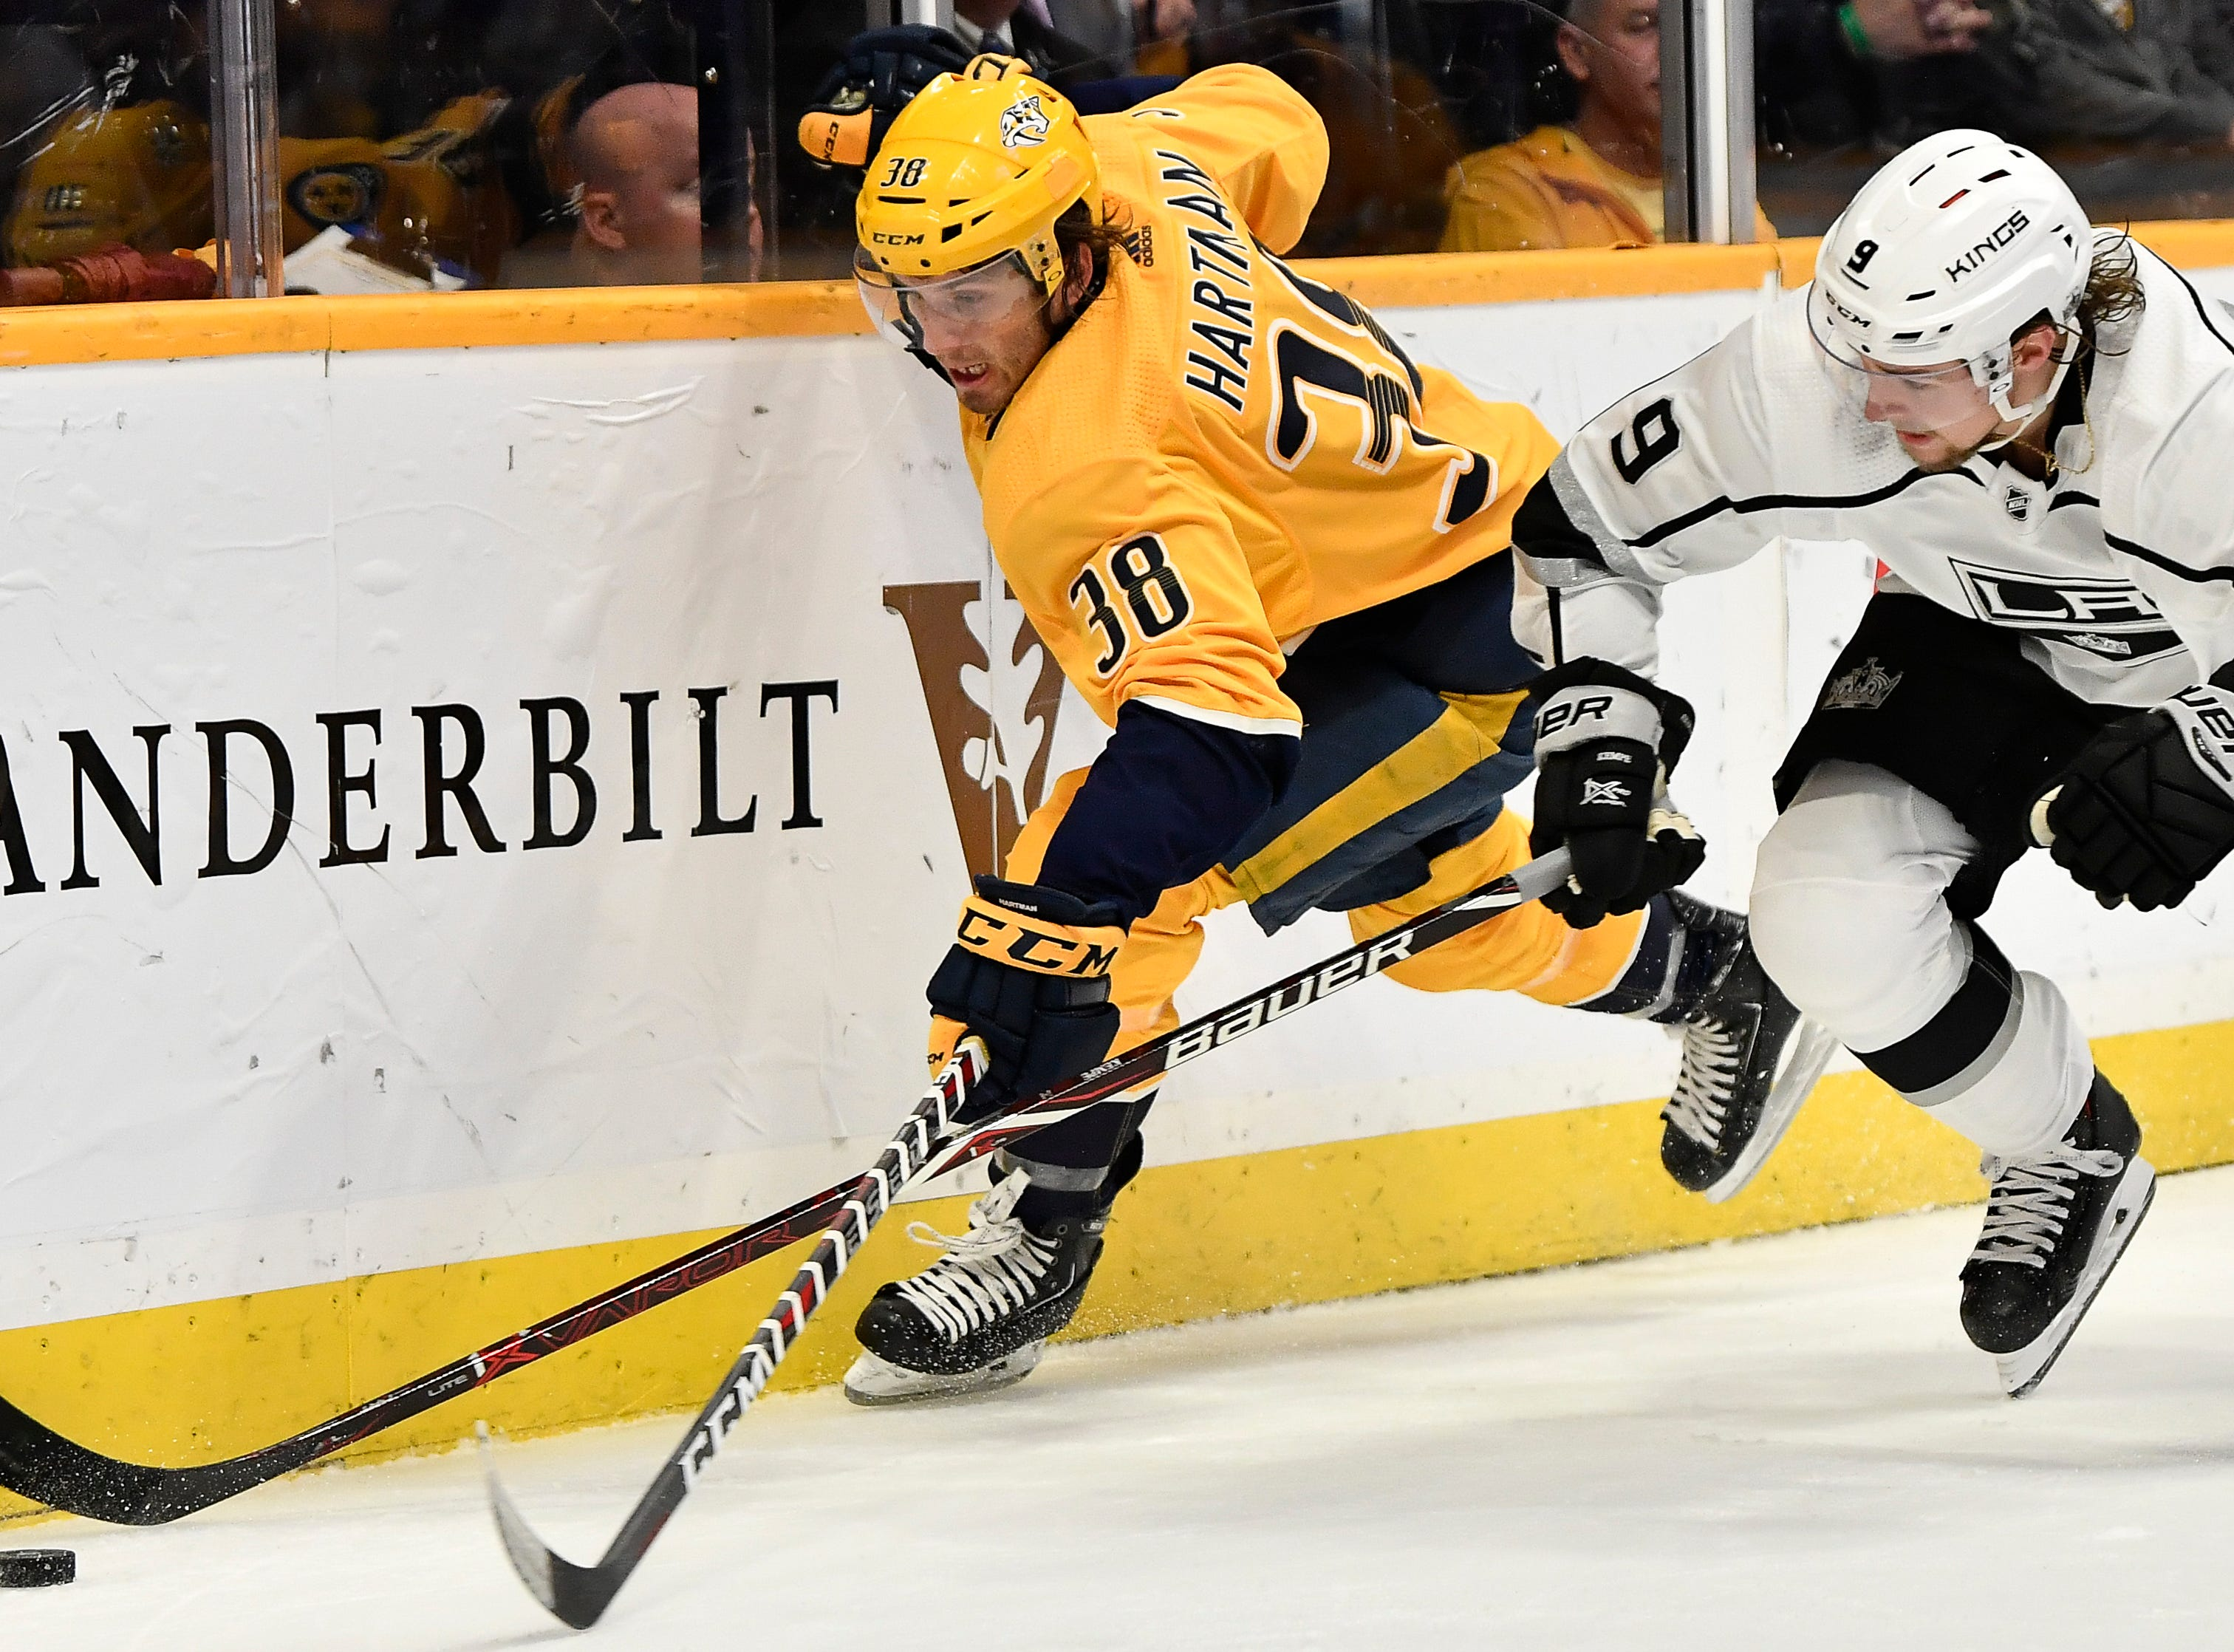 Predators right wing Ryan Hartman (38) battles for the puck with Kings center Adrian Kempe (9) during the first period at Bridgestone Arena Thursday, Feb. 21, 2019 in Nashville, Tenn.